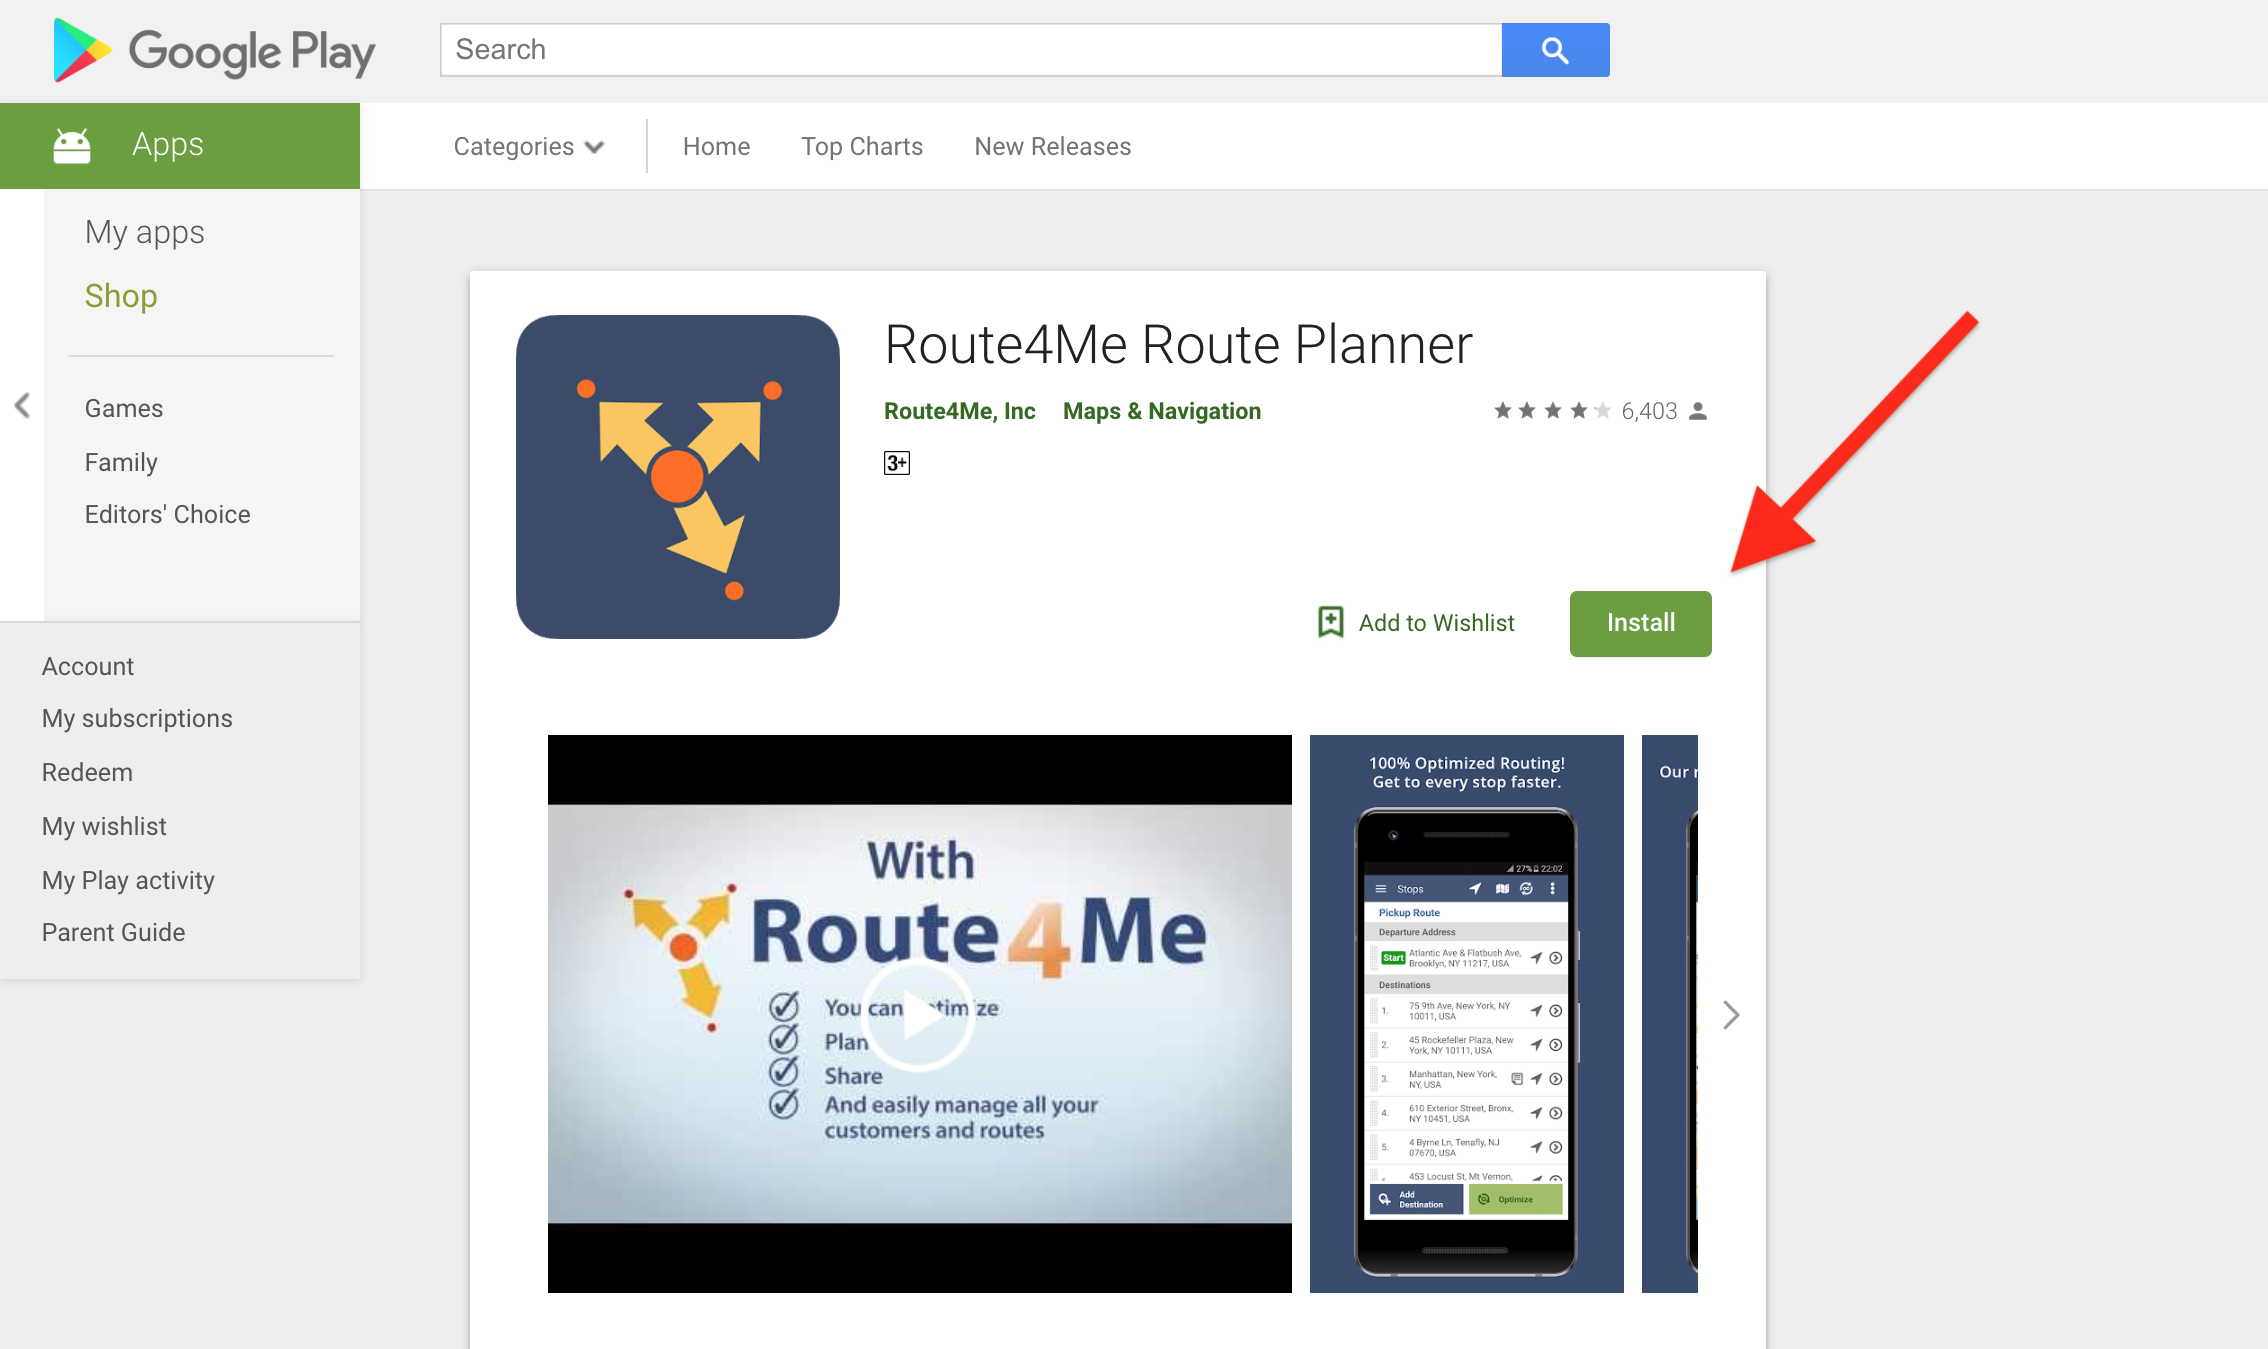 Downloading and Installing the Route4Me Route Planner for